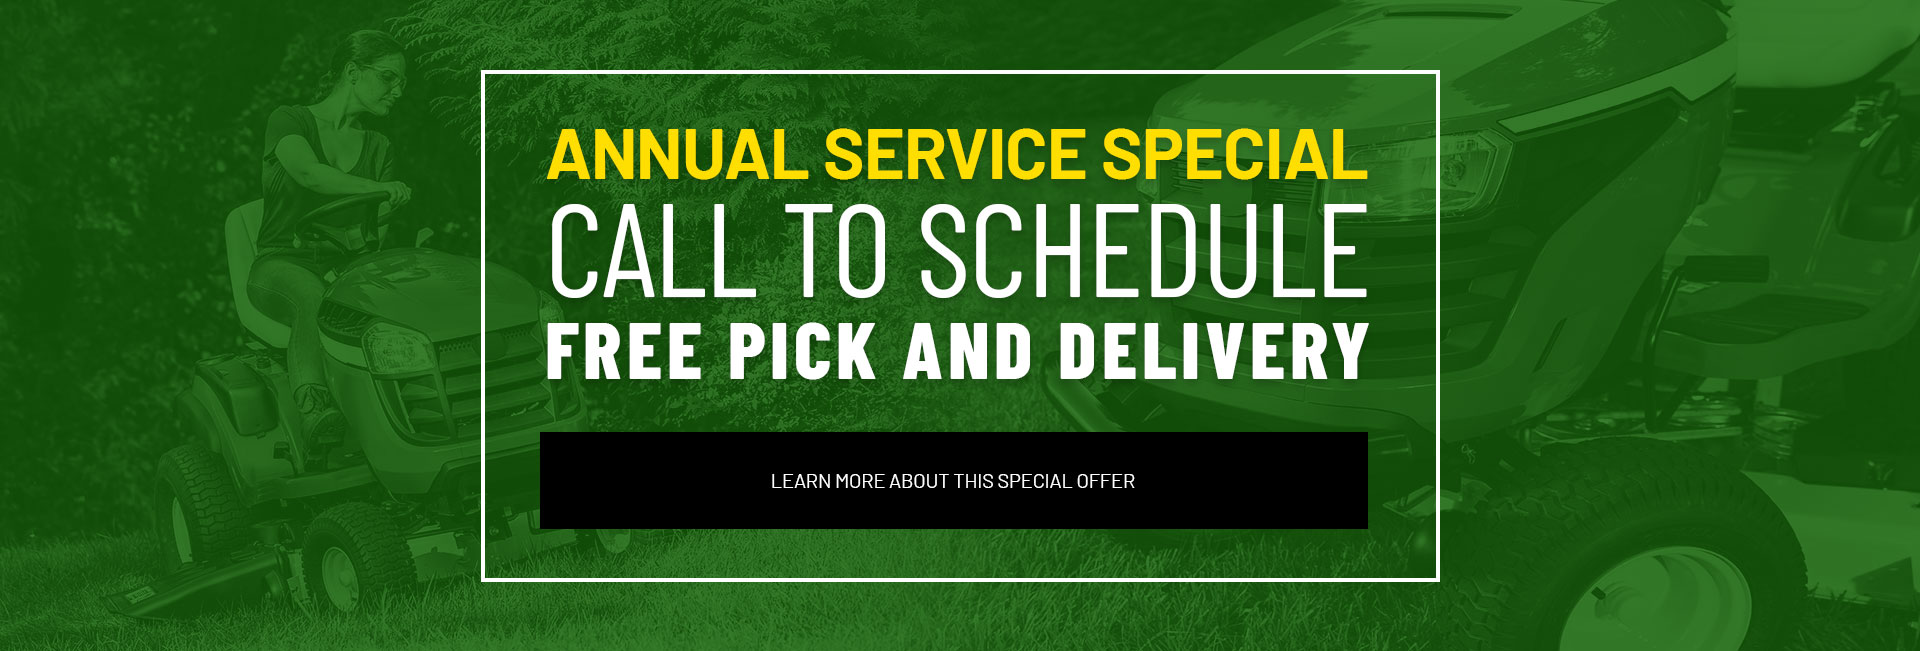 Annual Service Special - Learn More